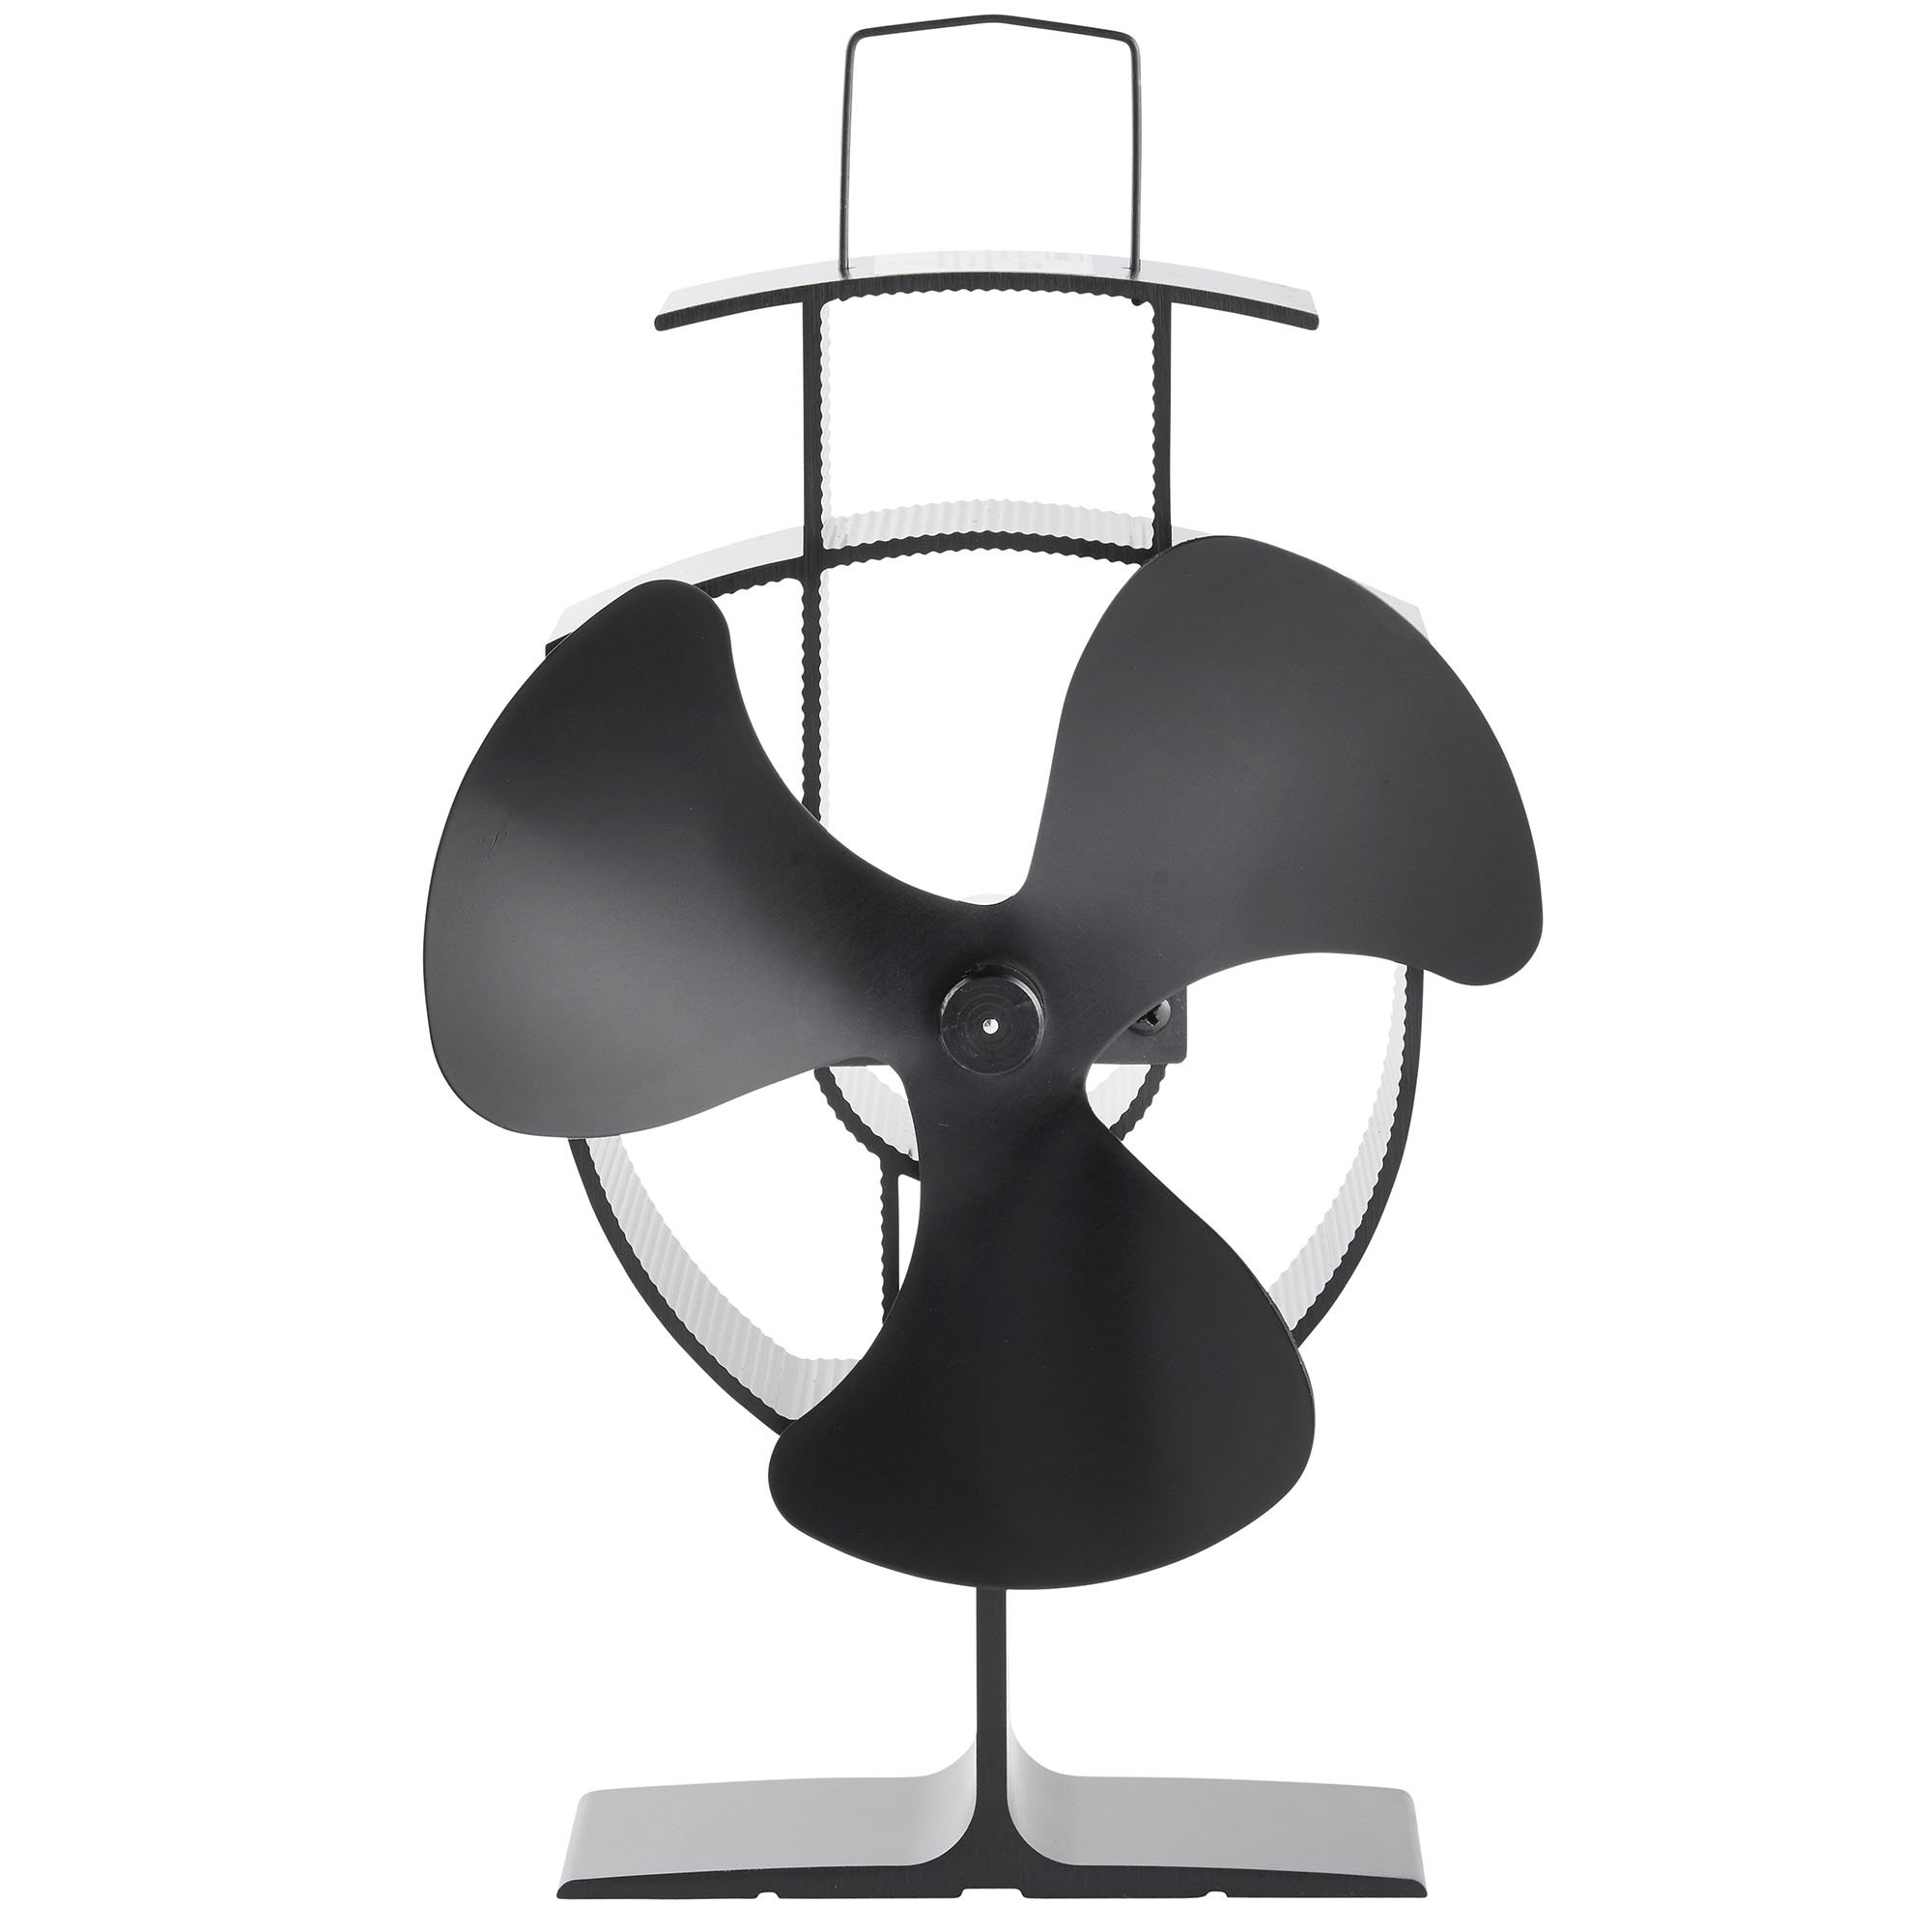 Heat powered fans for wood stoves - Heat Powered Stove Fan Increases The Efficiency Of Your Freestanding Stove Oven Or Wood Log Burner To Generate Warmth Economically